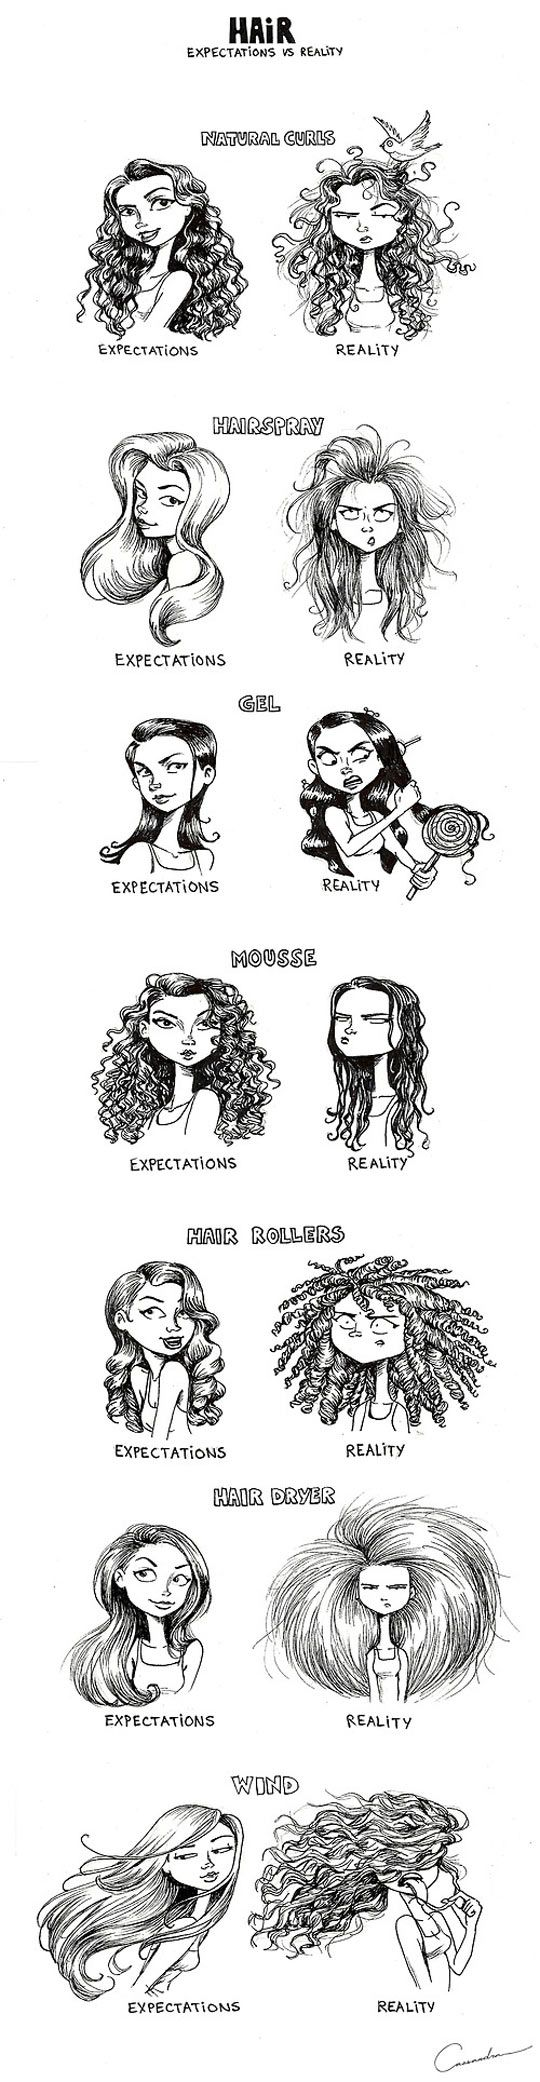 """I died at the hair rollers xD I always try to get curls like the on in """"expectations"""" but noooo I always get reality xD"""